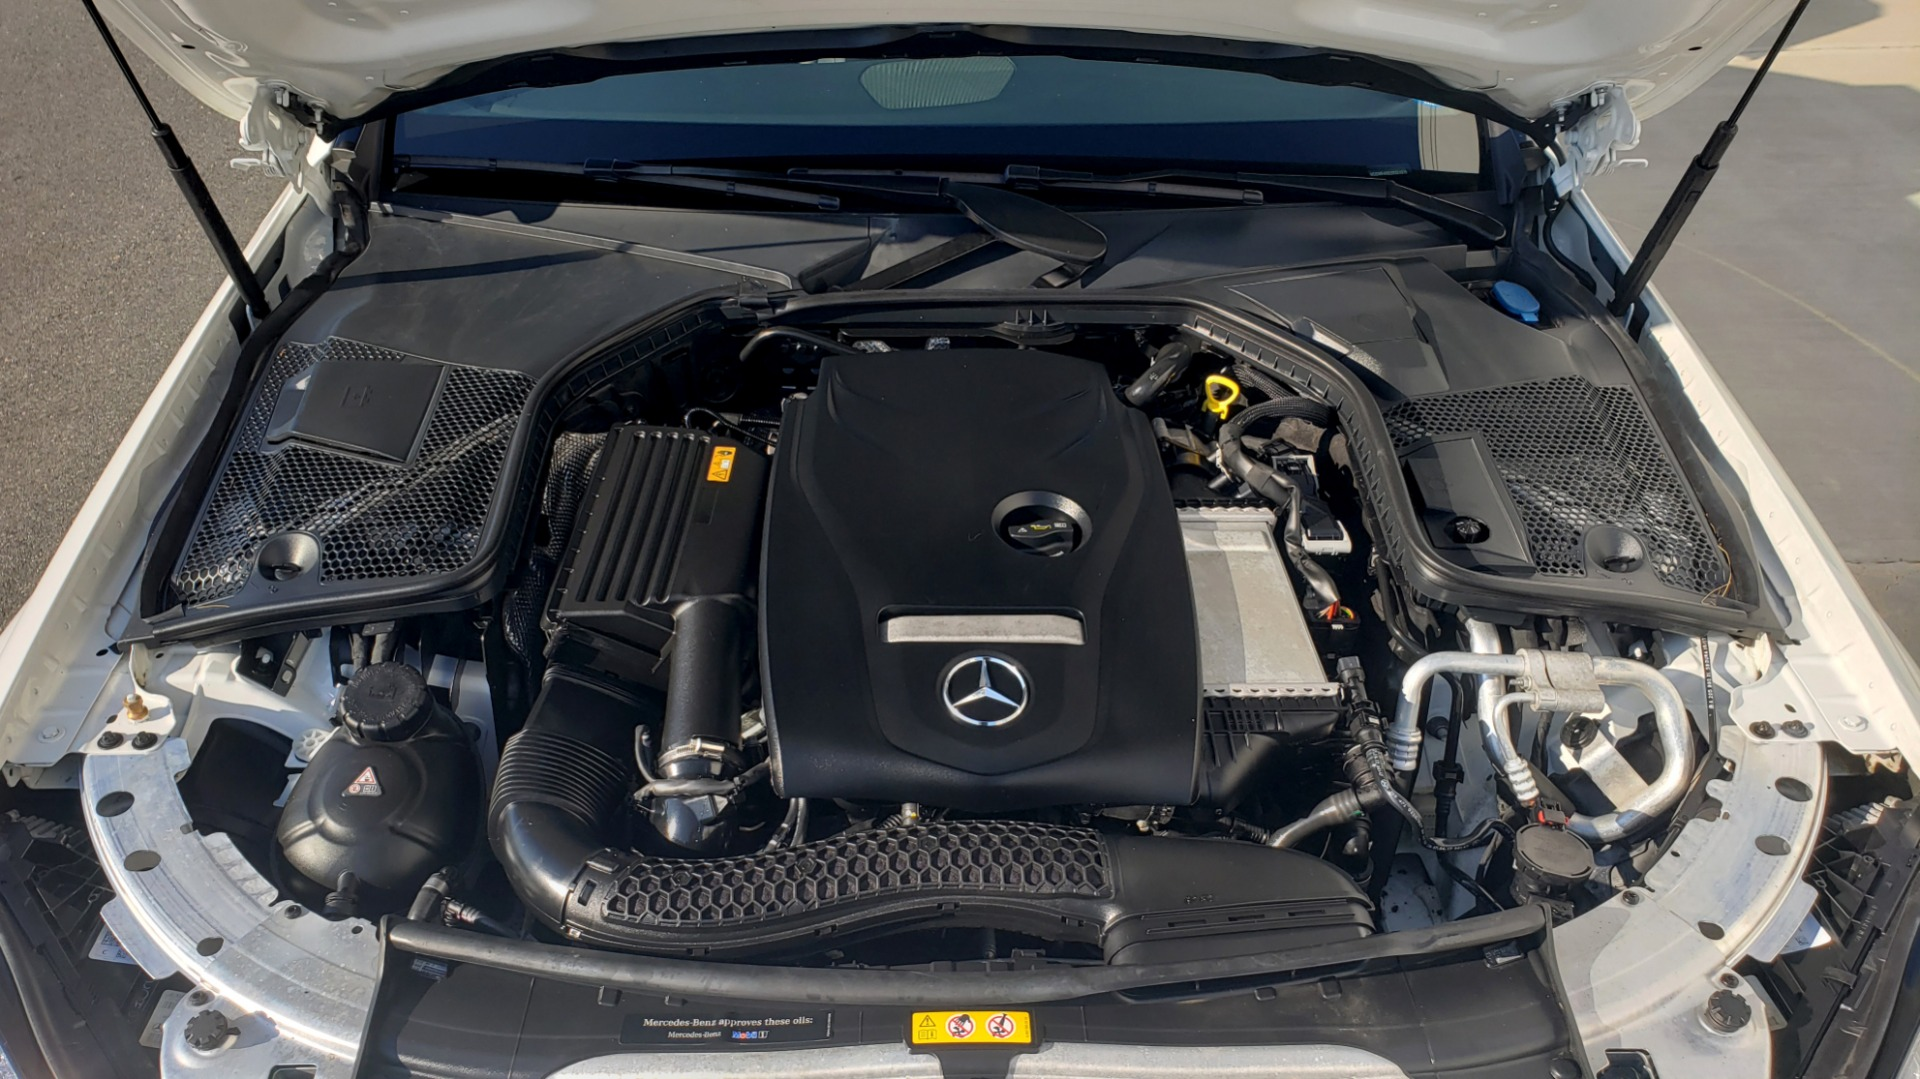 Used 2018 Mercedes-Benz C-Class C 300 PREMIUM / NAV / PANO-ROOF / AMG LINE / MULTIMEDIA for sale $28,235 at Formula Imports in Charlotte NC 28227 13